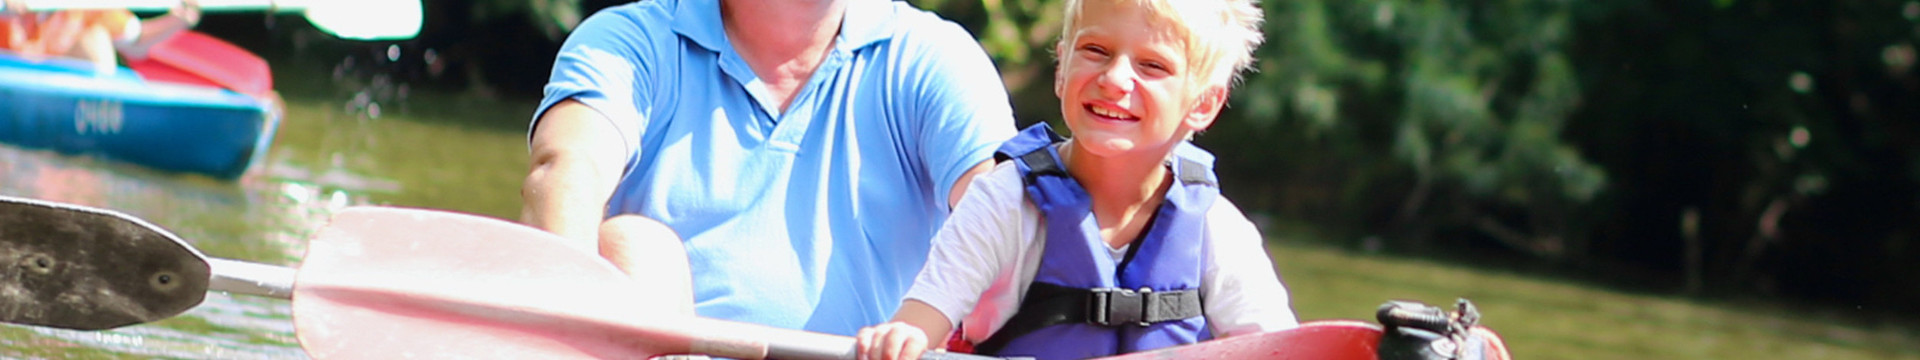 Missouri Resident Discount at our Branson Hotel near Roark Valley Road | Family Canoe Trip